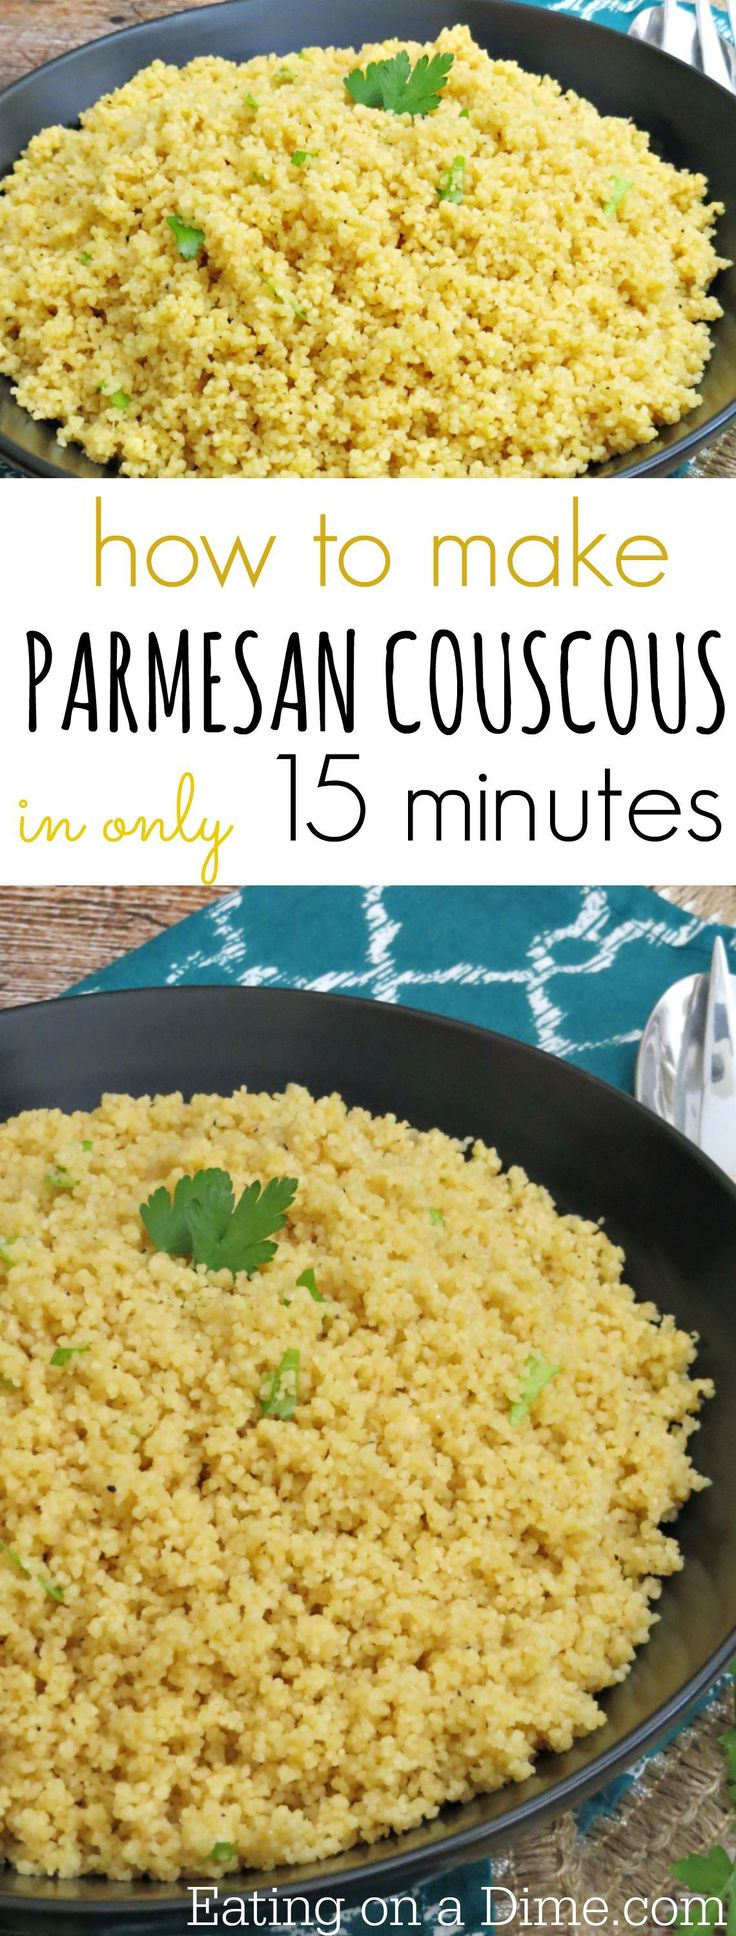 How to make Parmesan Couscous recipe.  I have a delicious 15-Minute Parmesan Couscous recipe for you today. This makes a tasty side dish for just about any meal like my Crock Pot Chicken Parmesan.